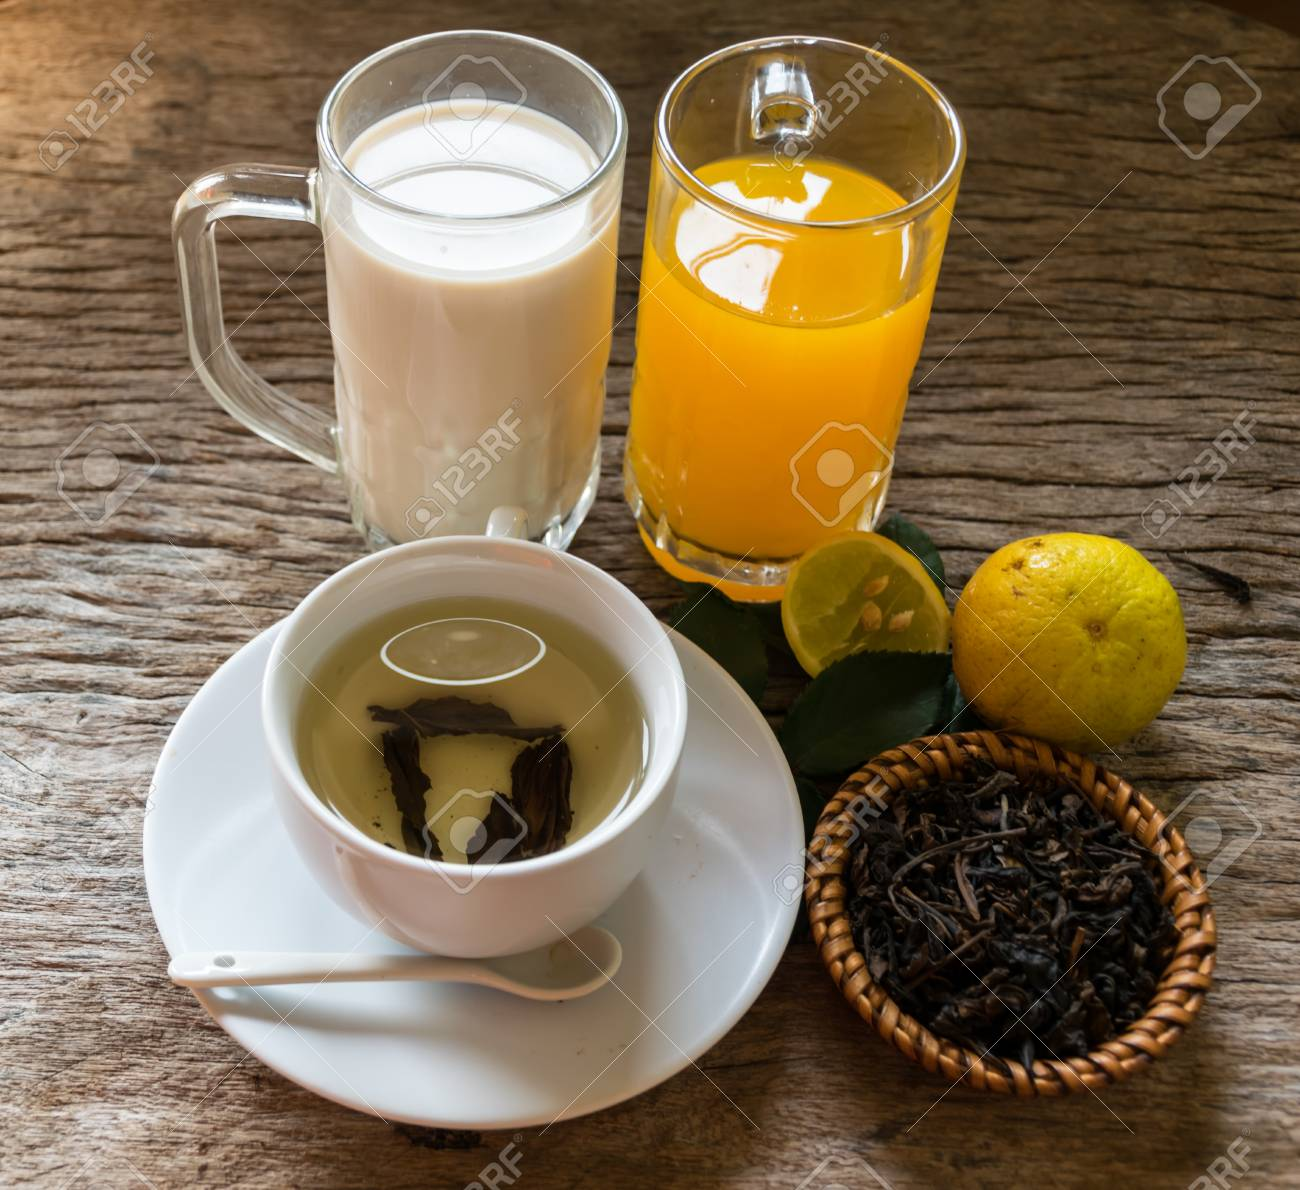 Healthy Menu In The Morning Orange Juice Milk And Tea Put On Stock Photo Picture And Royalty Free Image Image 96263220